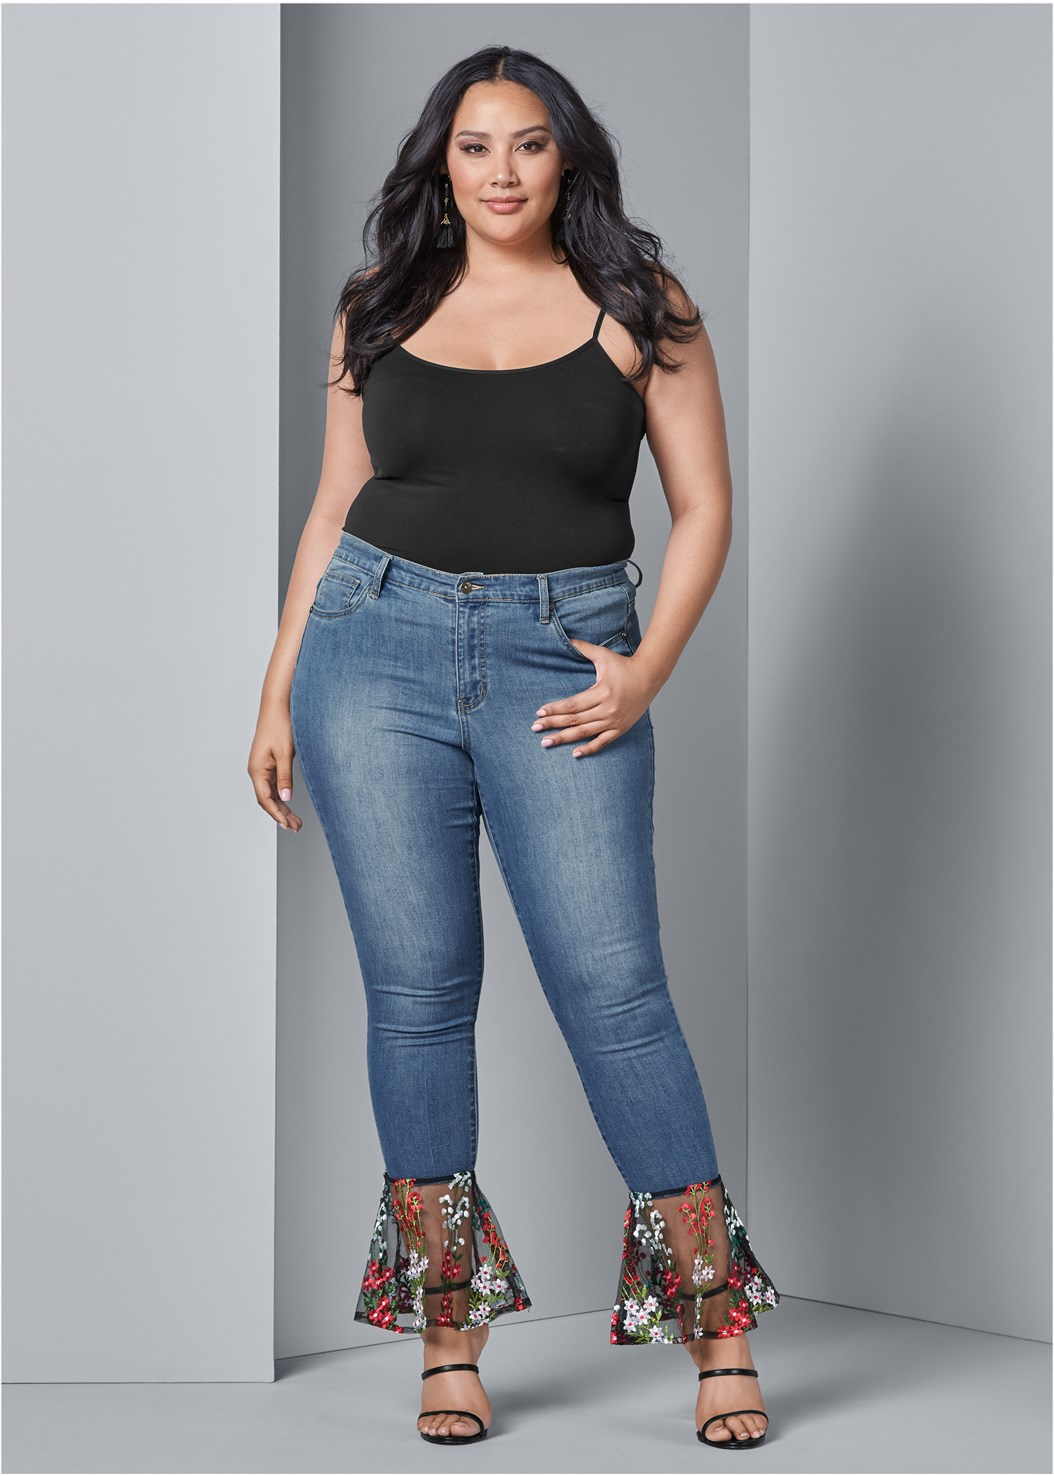 Lace Detail Jeans,Basic Cami Two Pack,High Heel Strappy Sandals,Bauble Fringe Earrings